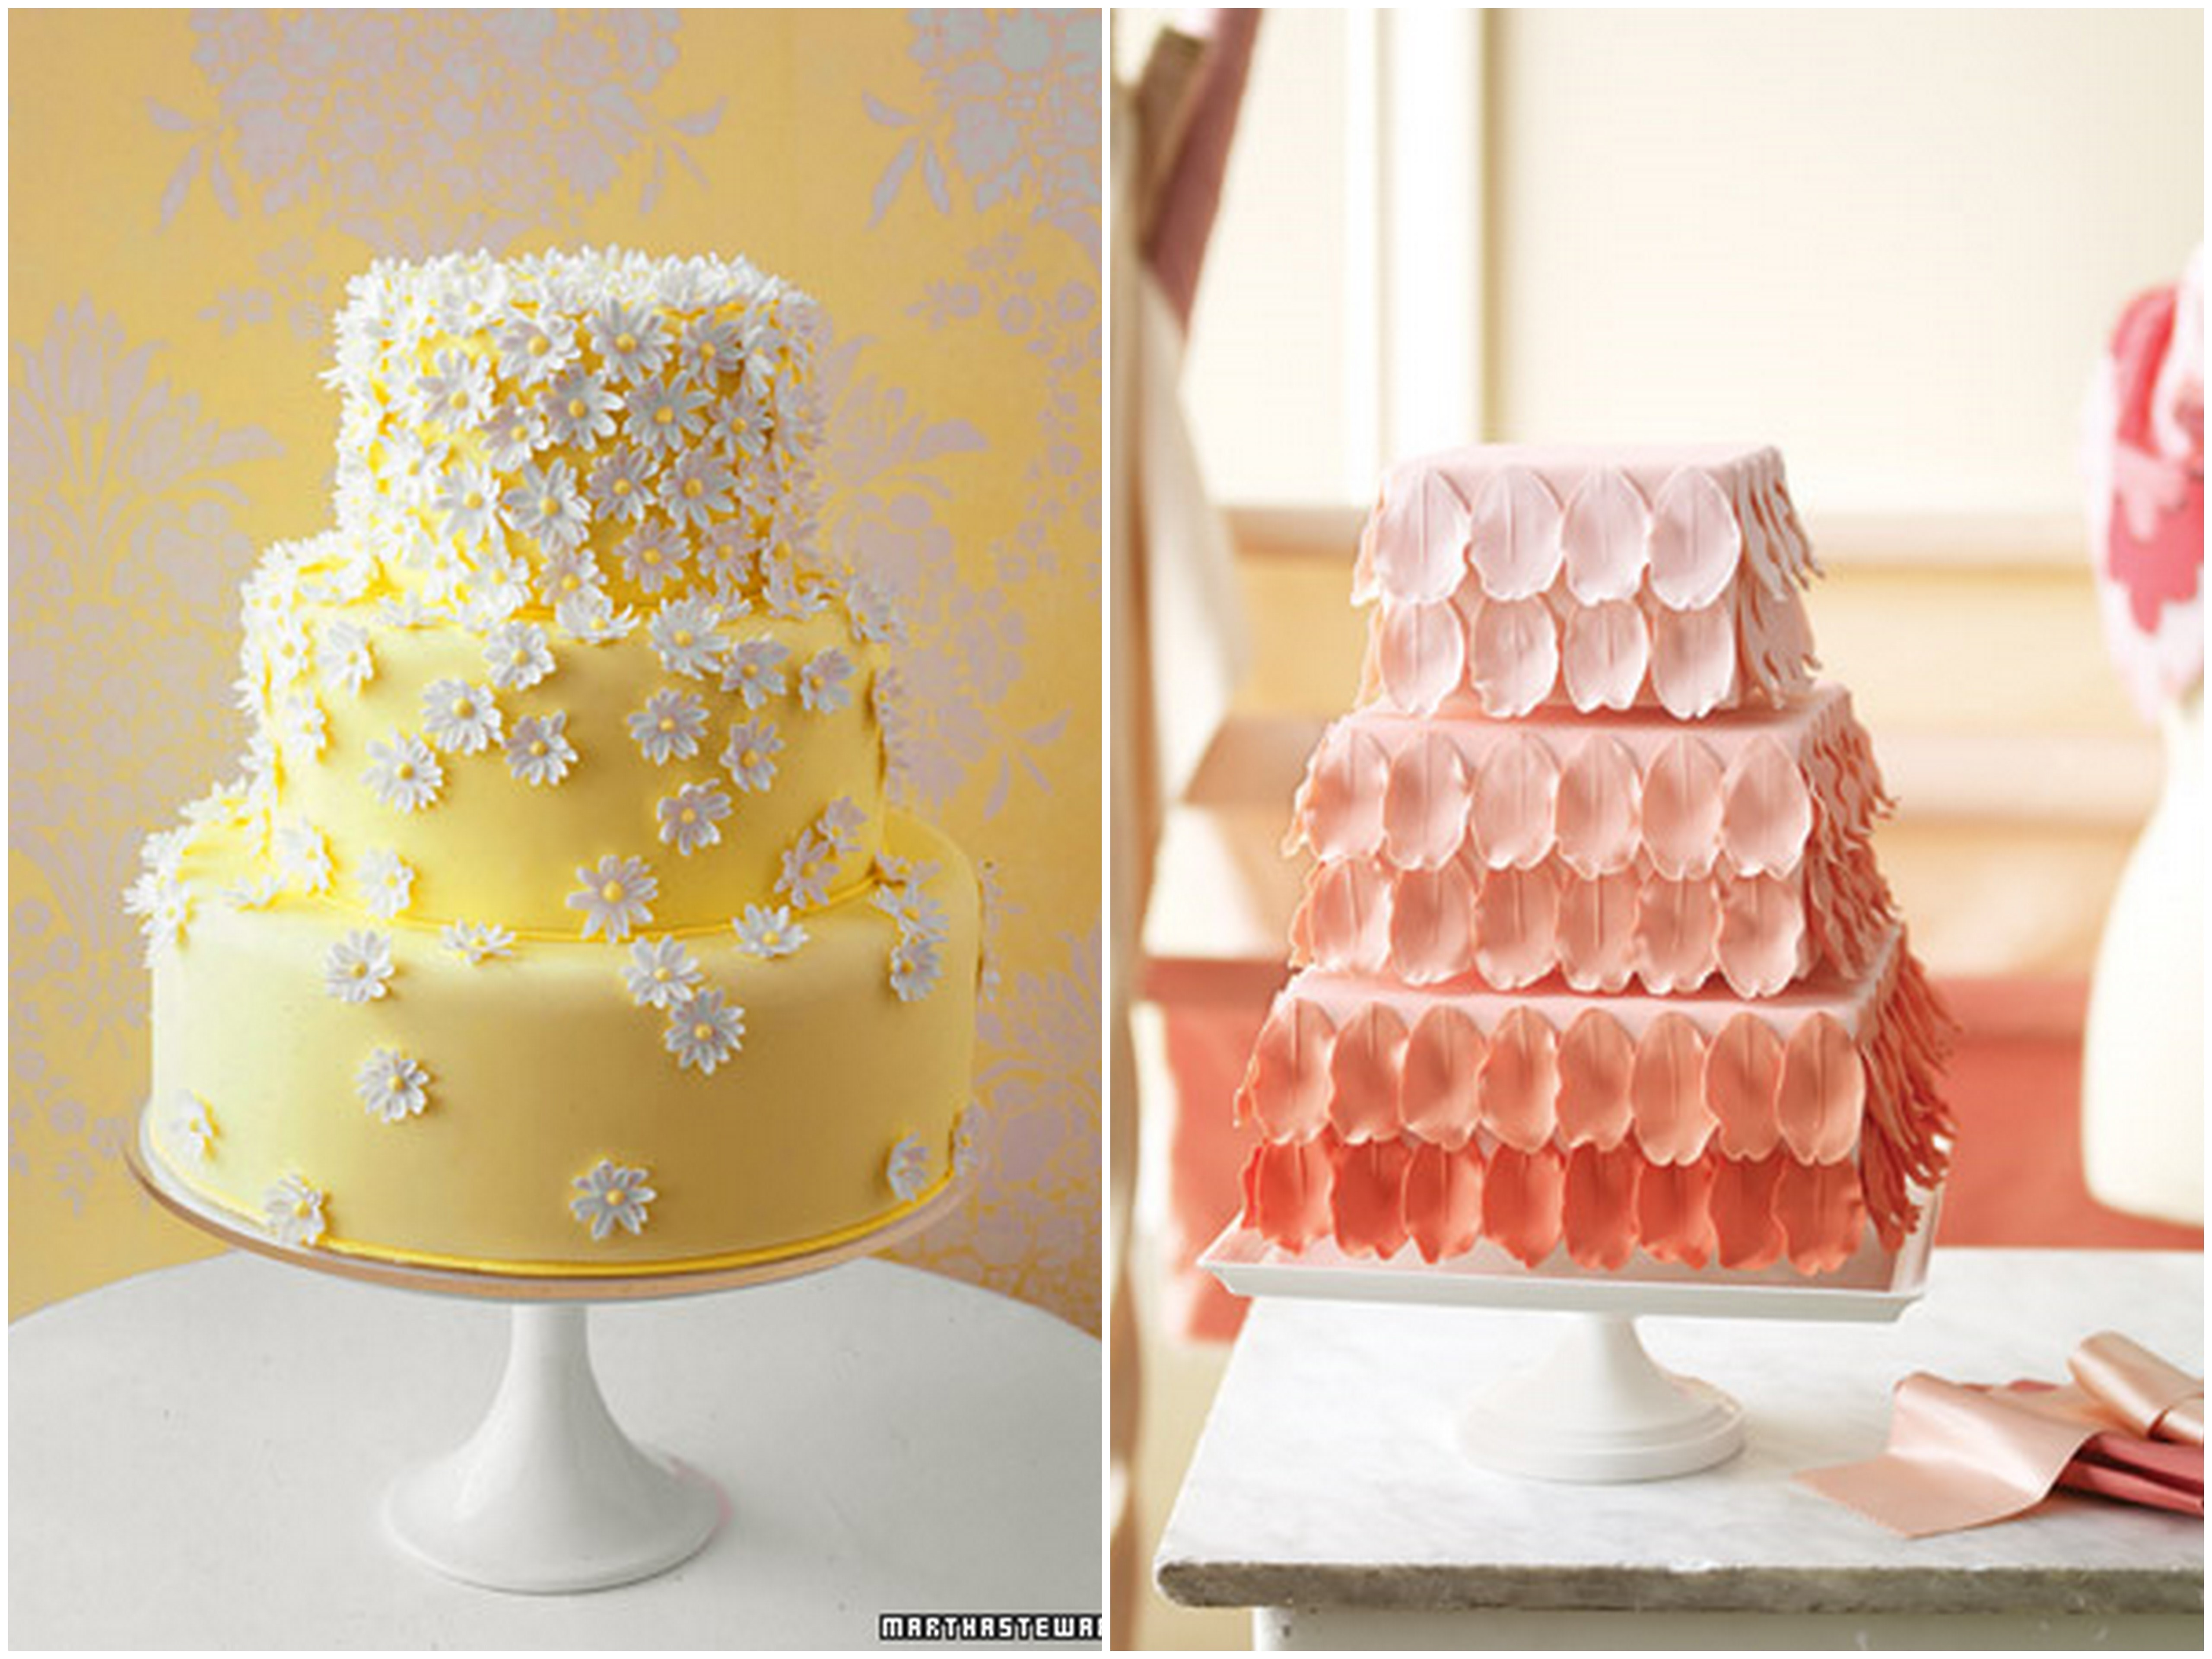 Cake With Fondant Flowers : Inspired by the Great Cake Debate: Fondant Vs. Buttercream ...